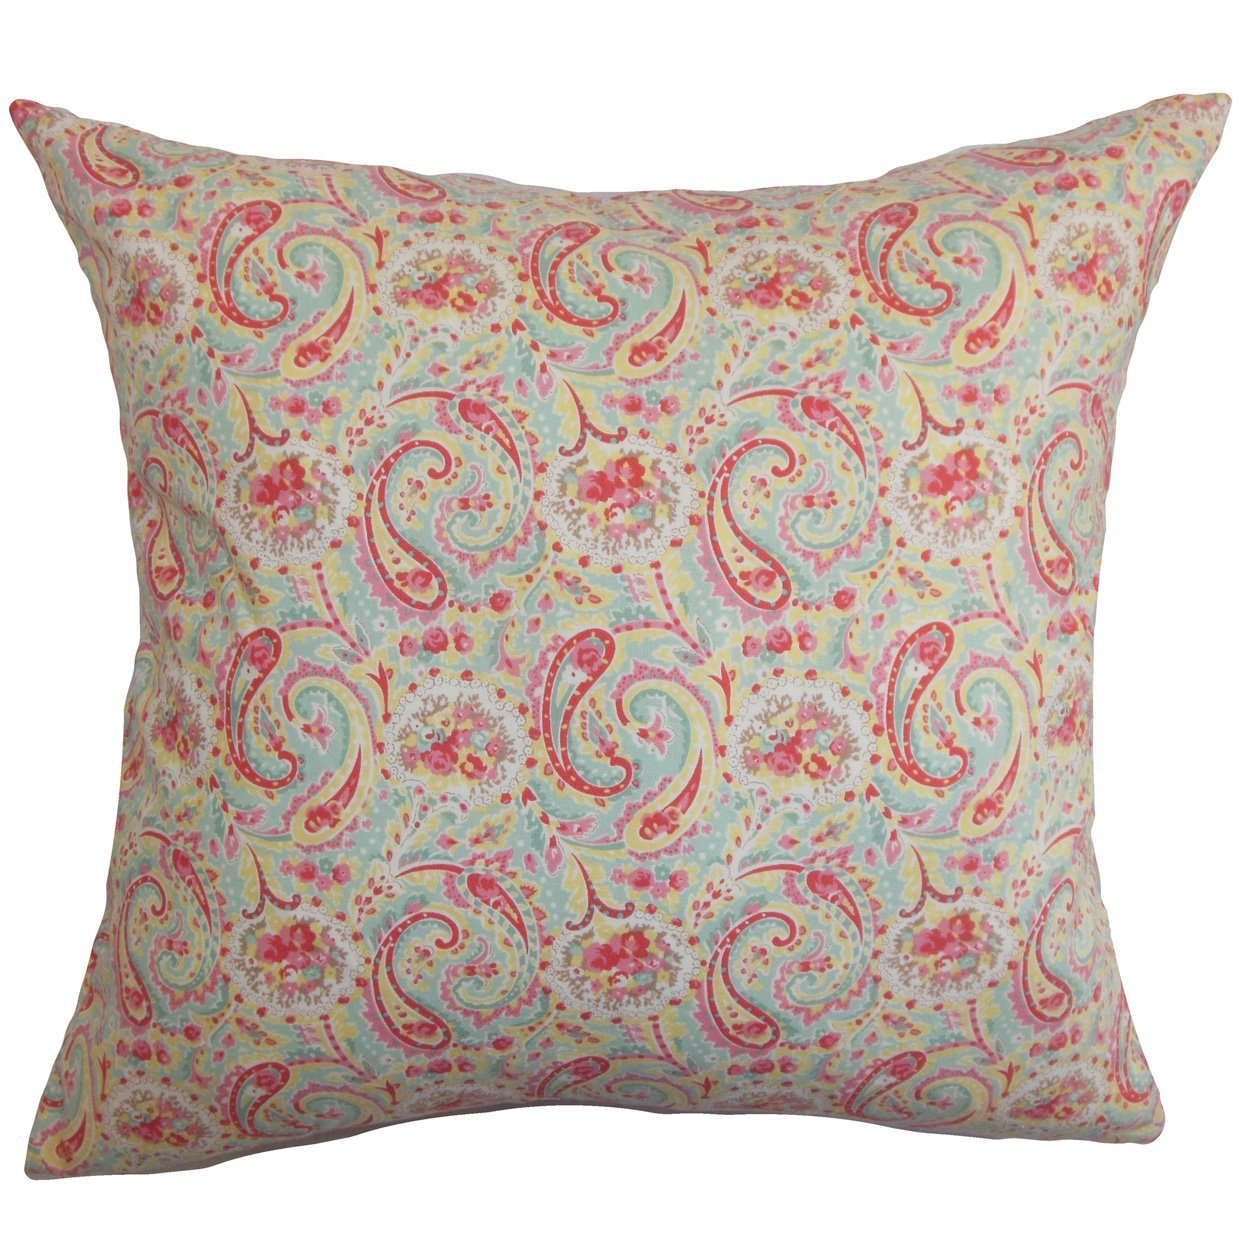 The Pillow Collection Neci Floral Bedding Sham Red Blue Standard//20 x 26,